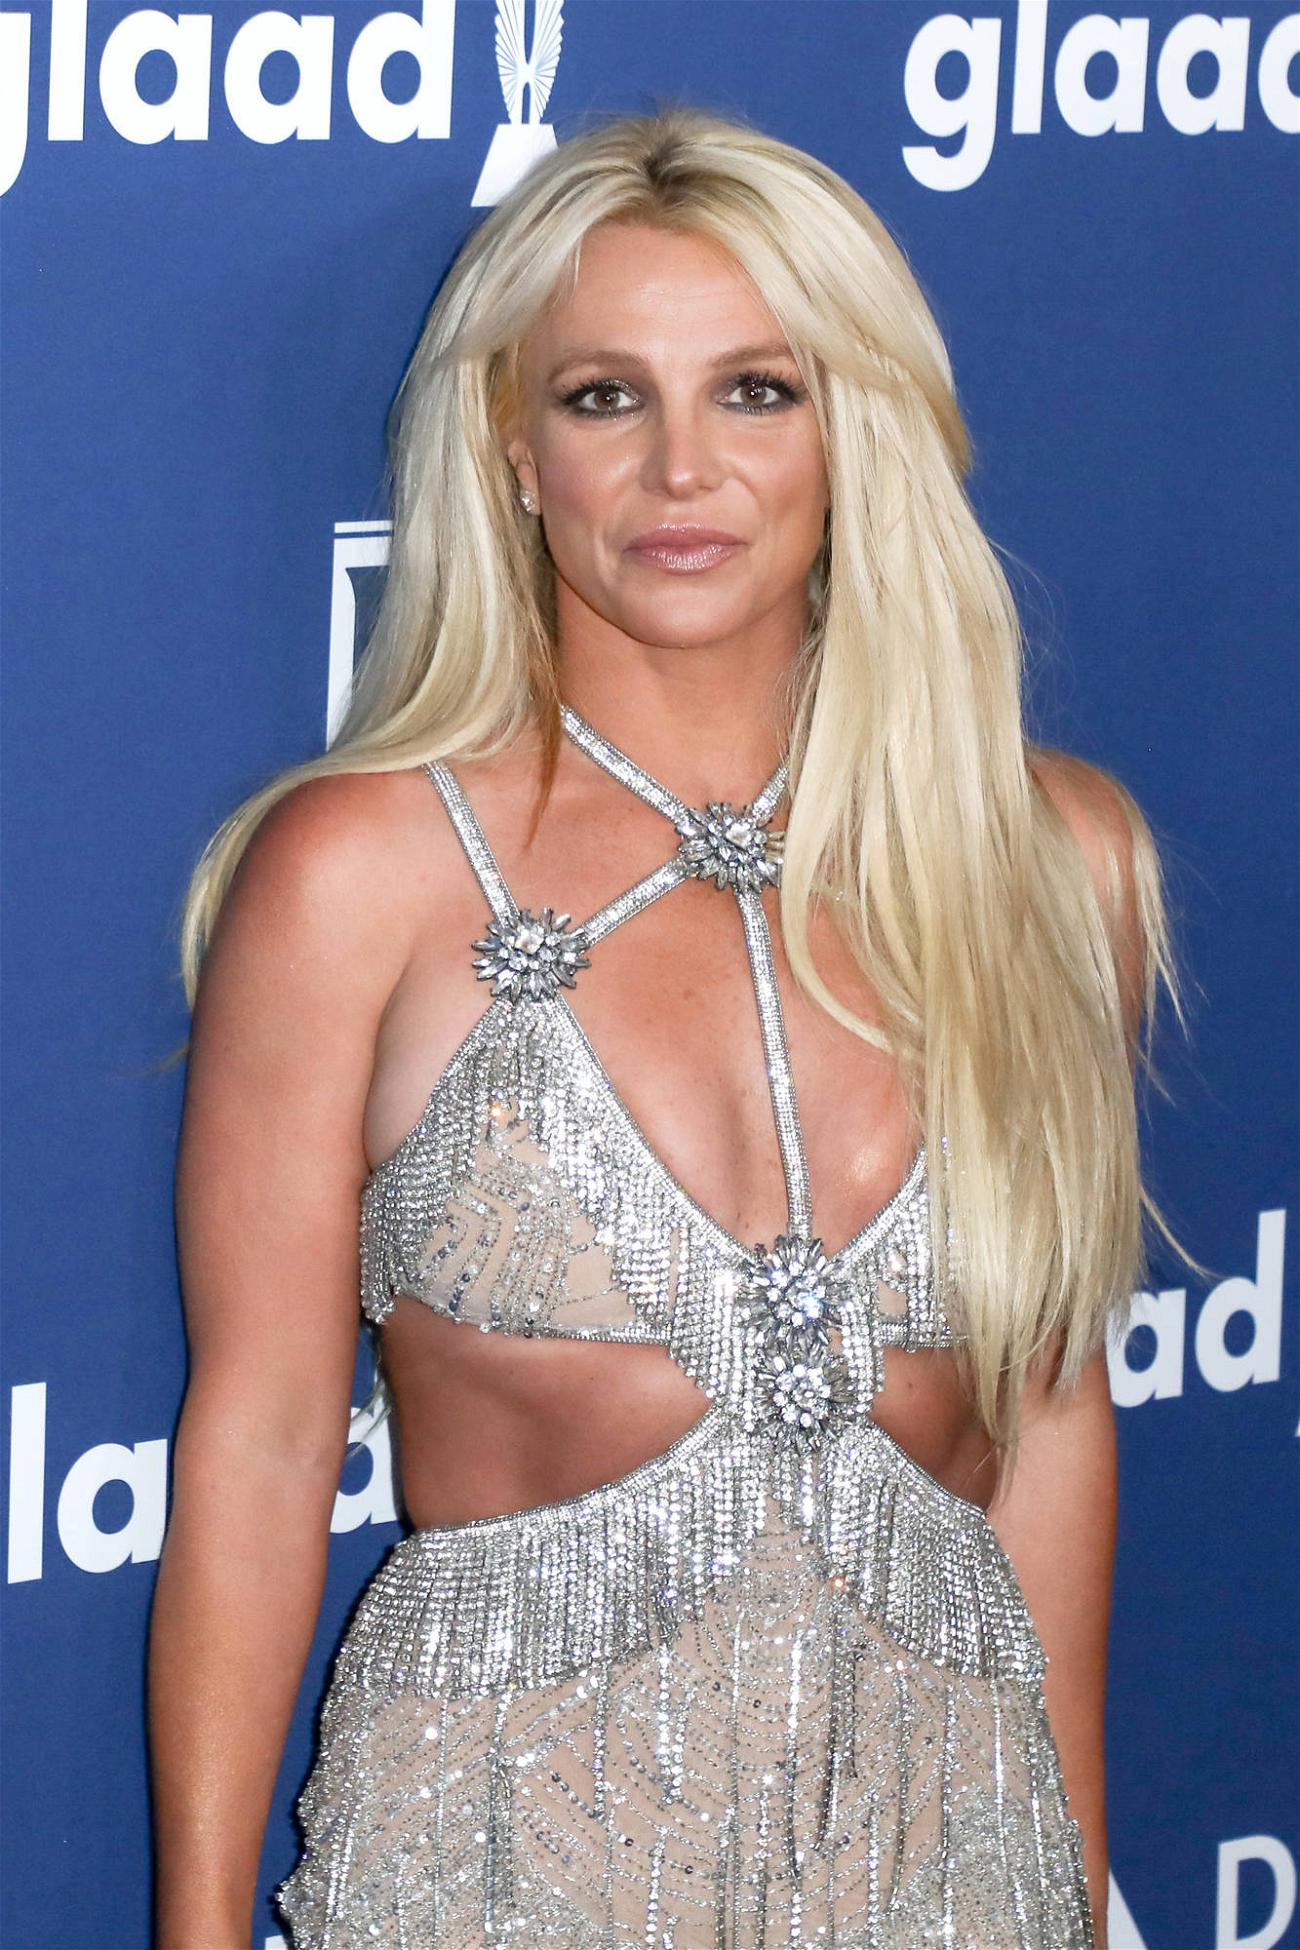 Britney's Conservator Is Receiving Death Threats